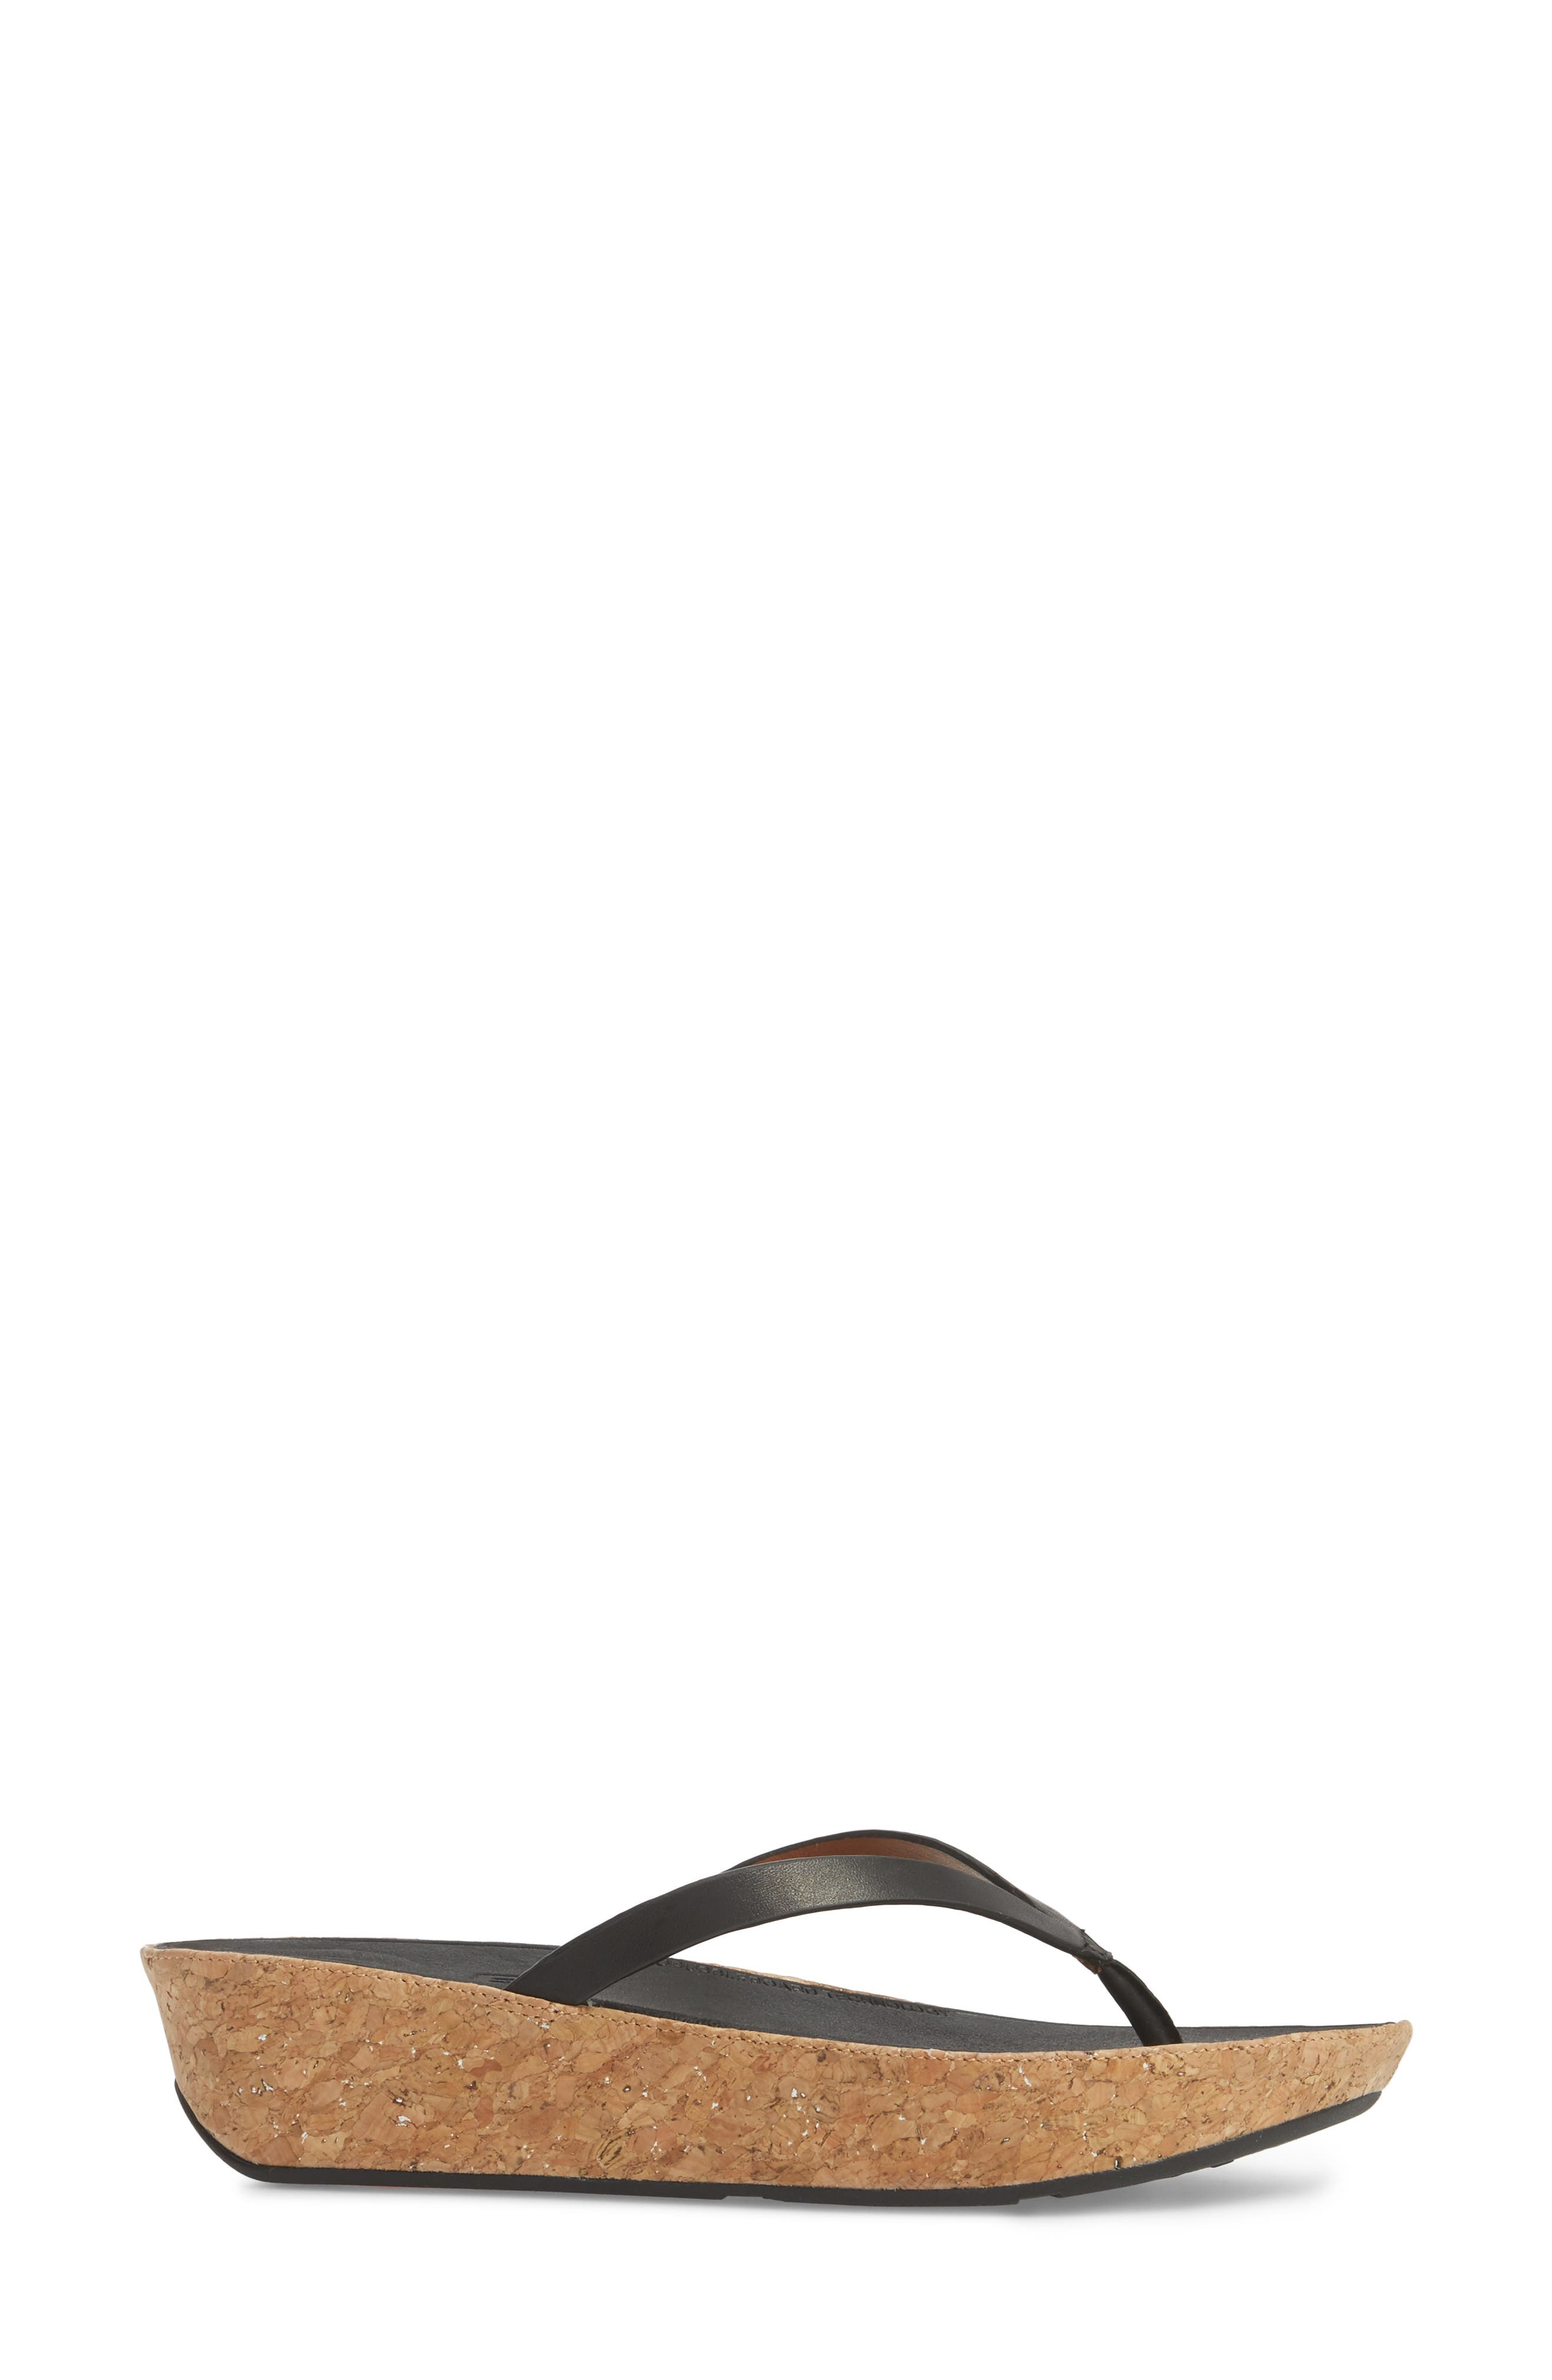 FITFLOP,                             Linny Wedge Flip Flop,                             Alternate thumbnail 3, color,                             001